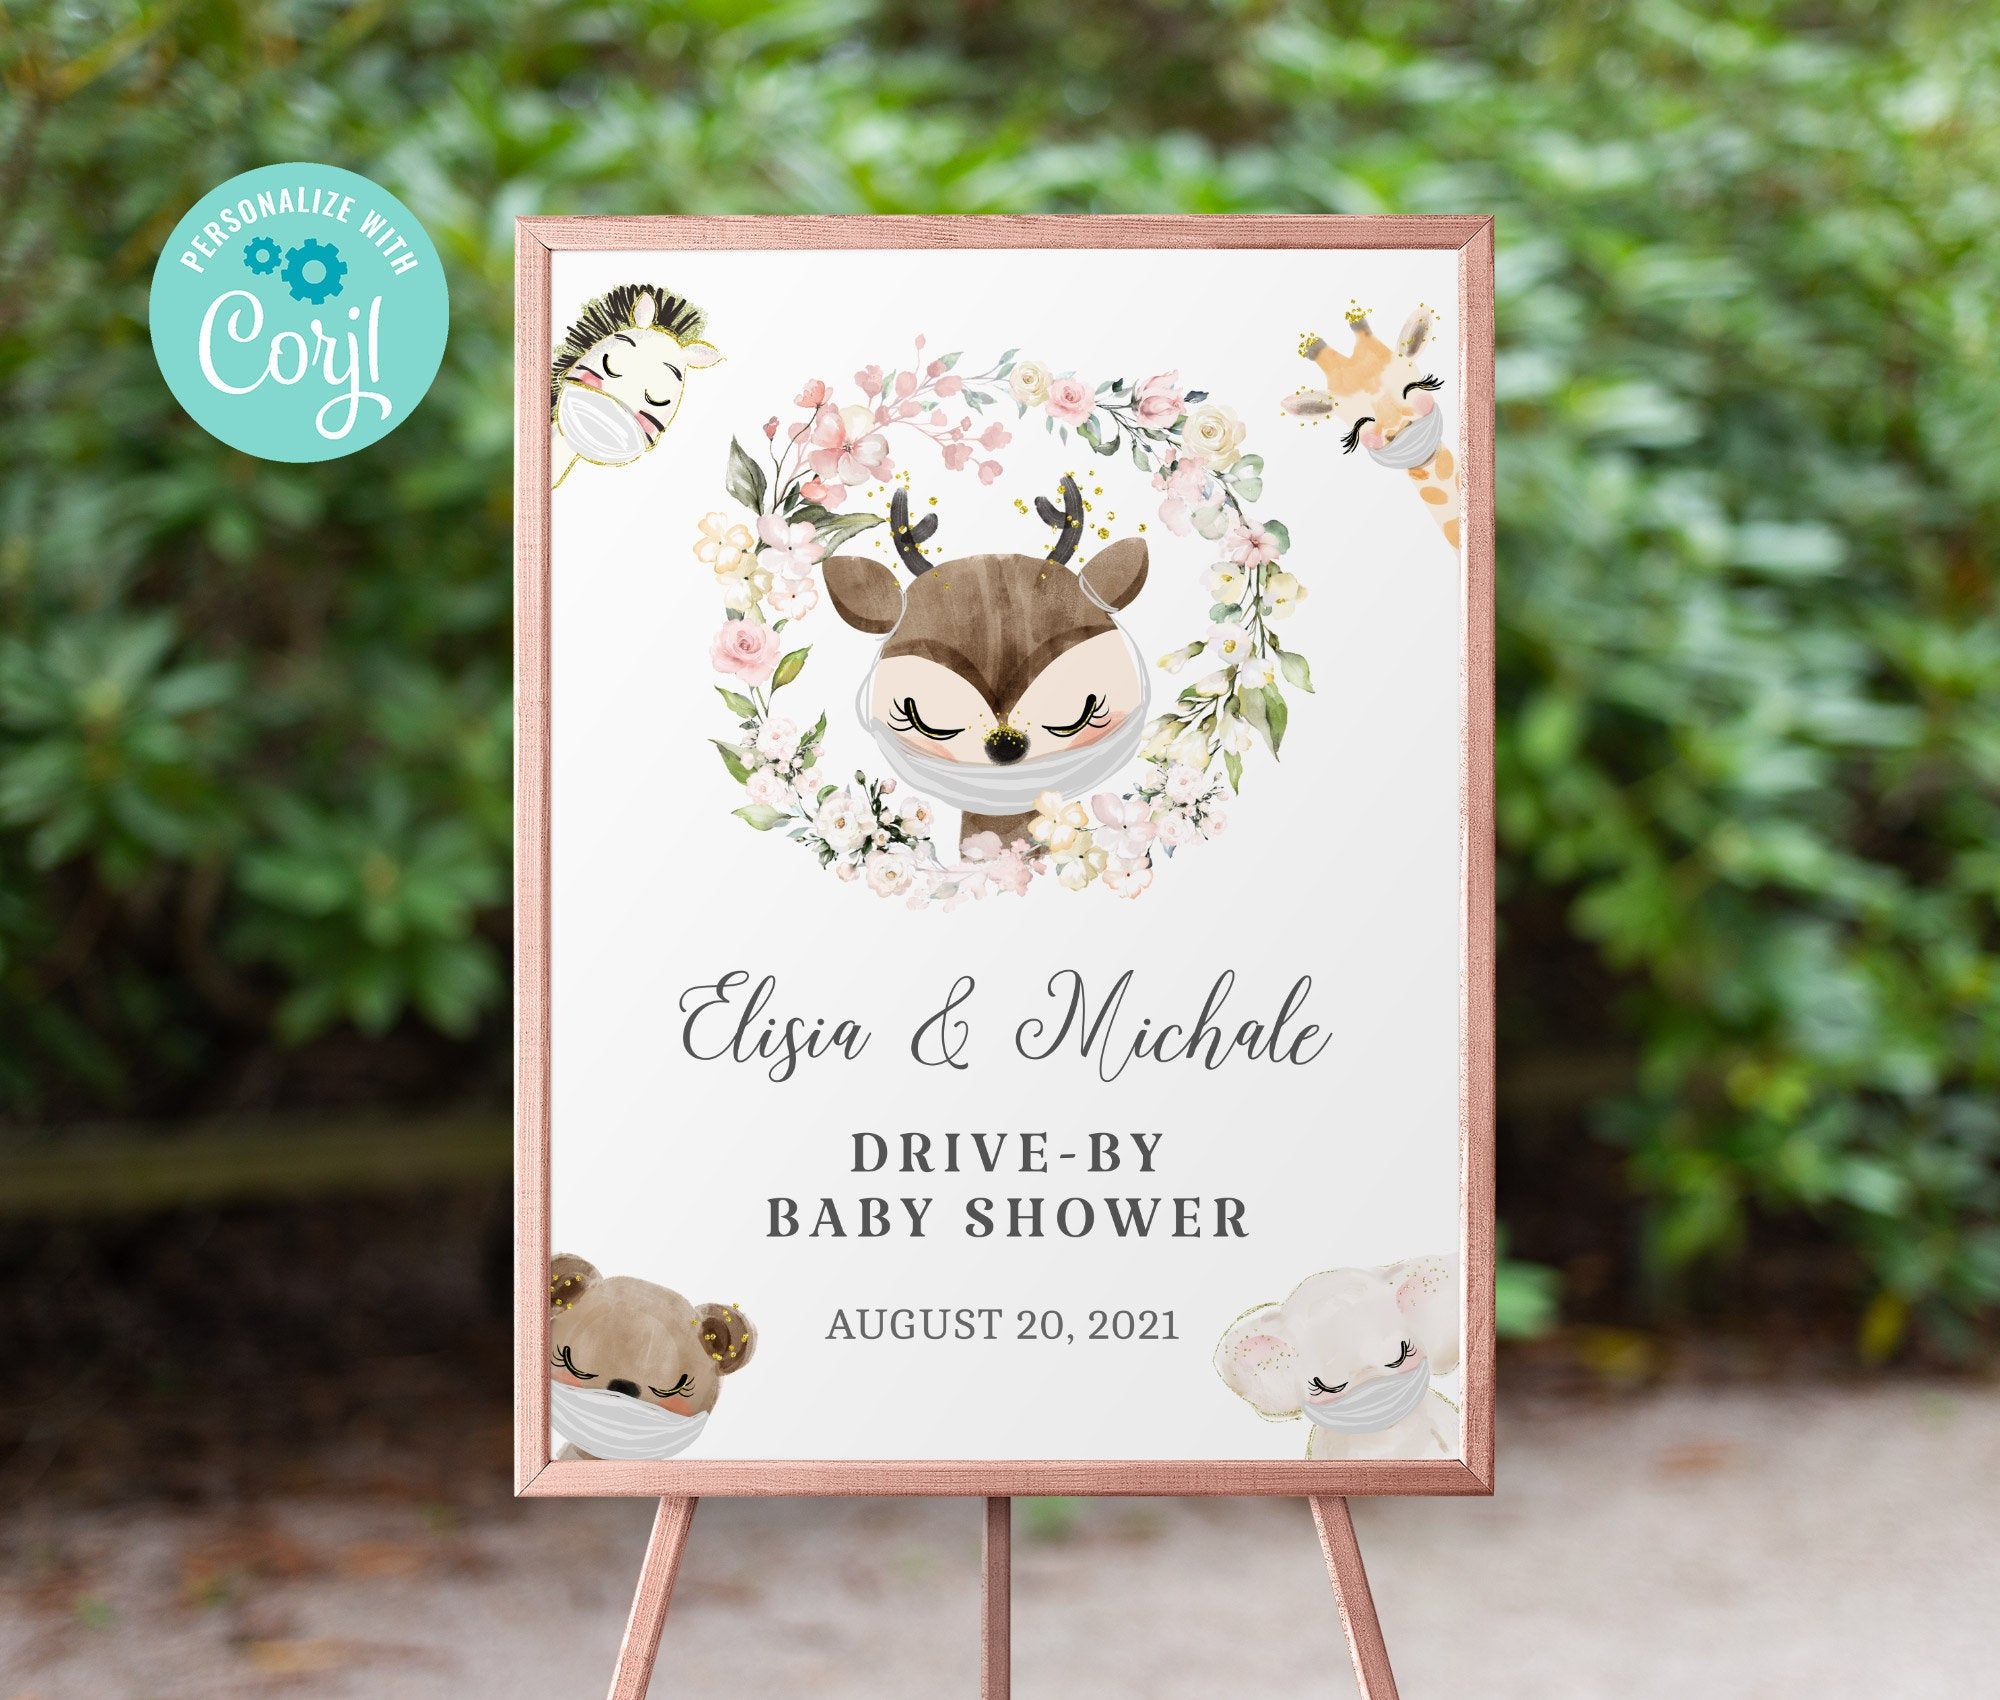 Drive By Baby Shower Welcome Sign Printable •  Raindeer Editable Sign • Quarantine Baby Animals • Social Distancing Party • Instant BS3601